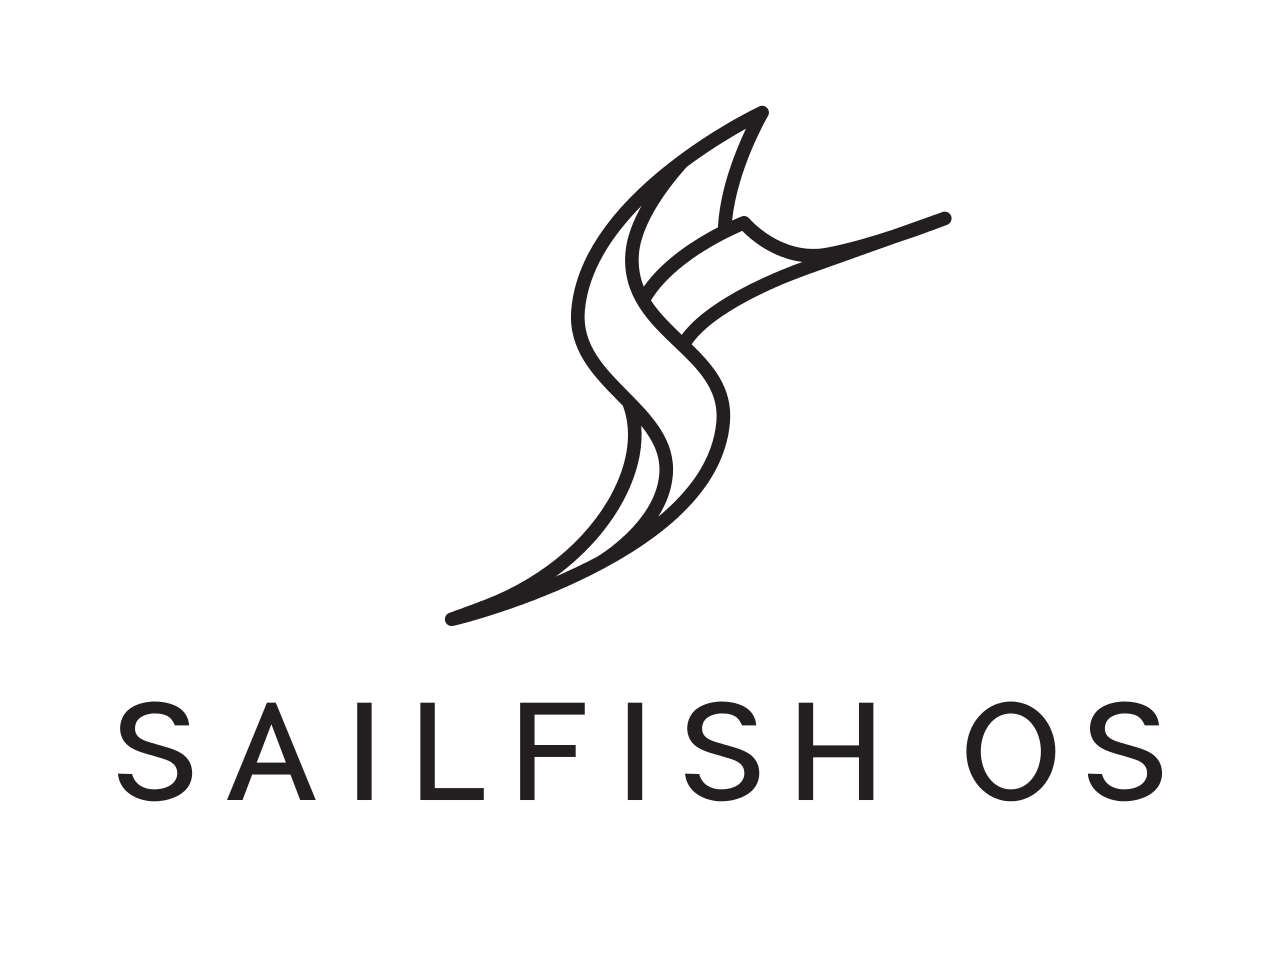 Sailfish svg #19, Download drawings